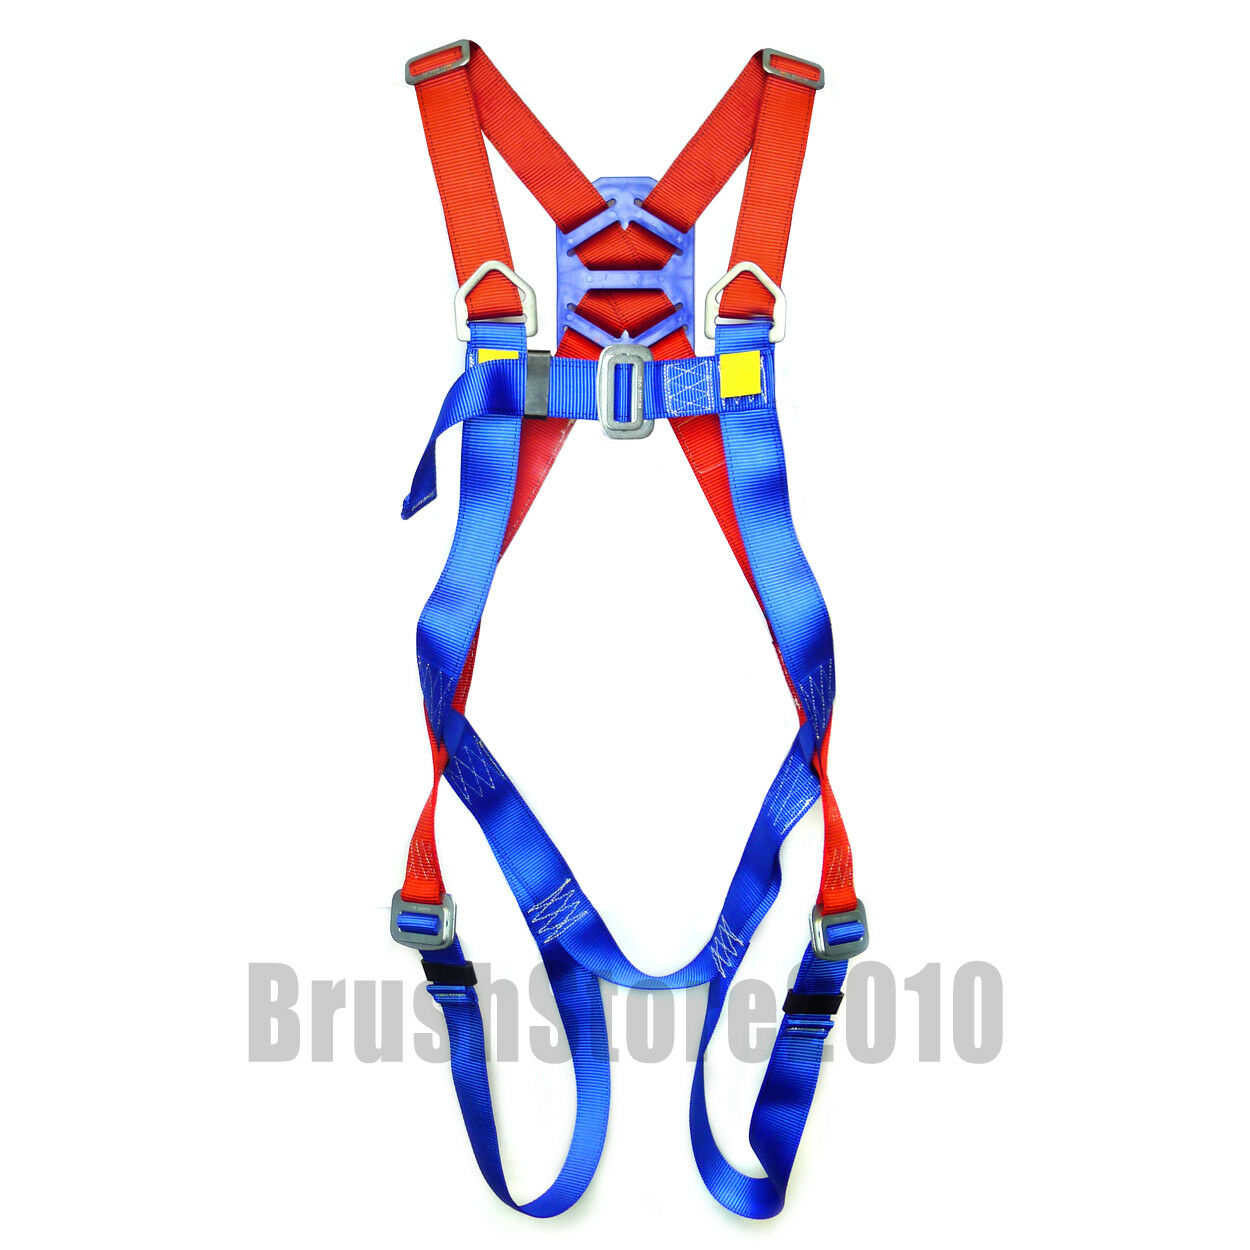 Full Body Safety Harness Fall Arrest Protection En361 Cep40 2300 1 Of 7free Shipping